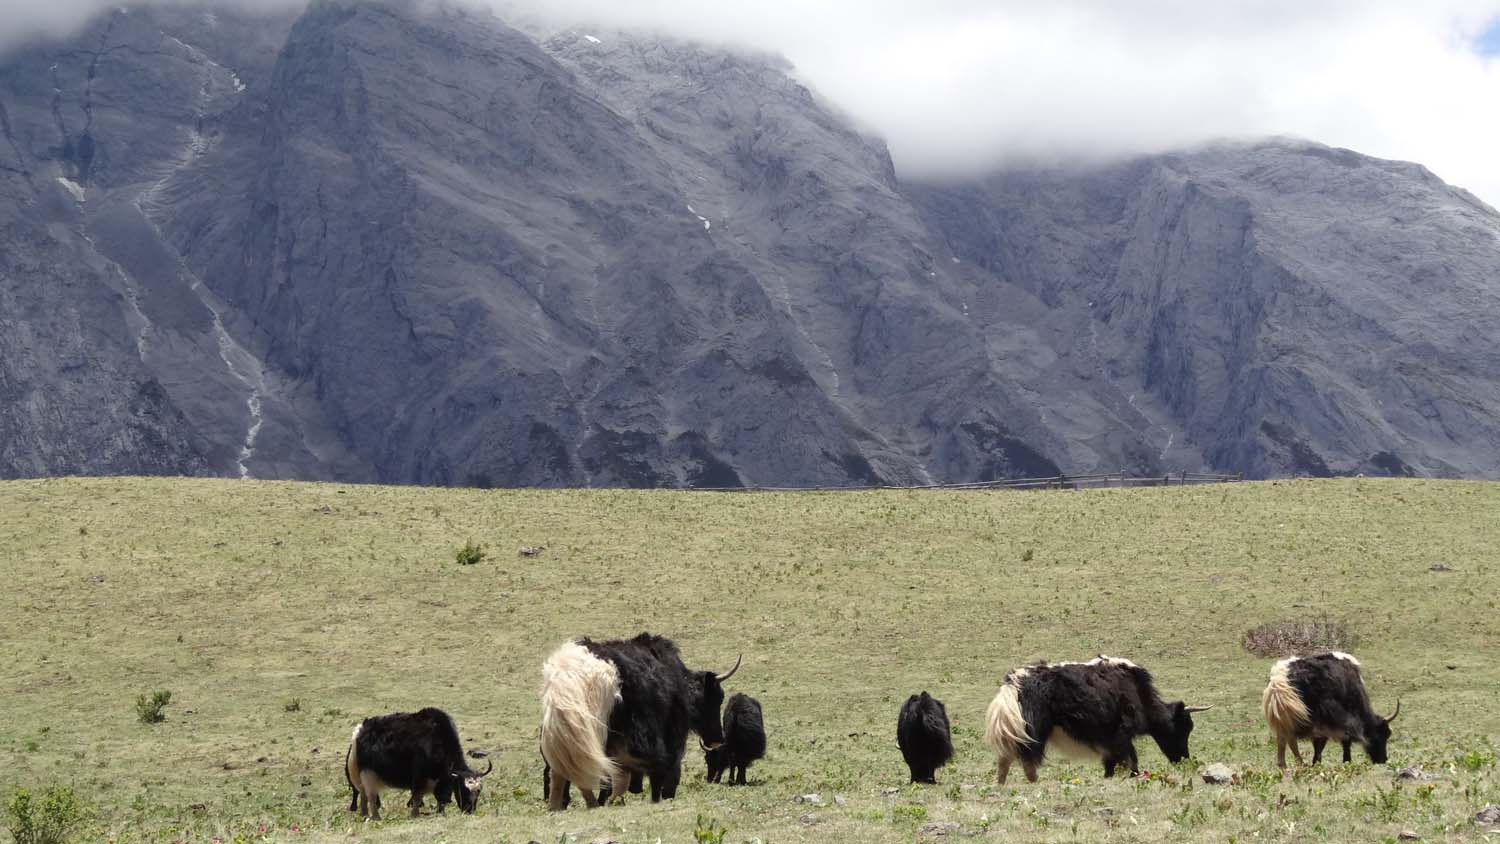 yaks in the Yak Meadow